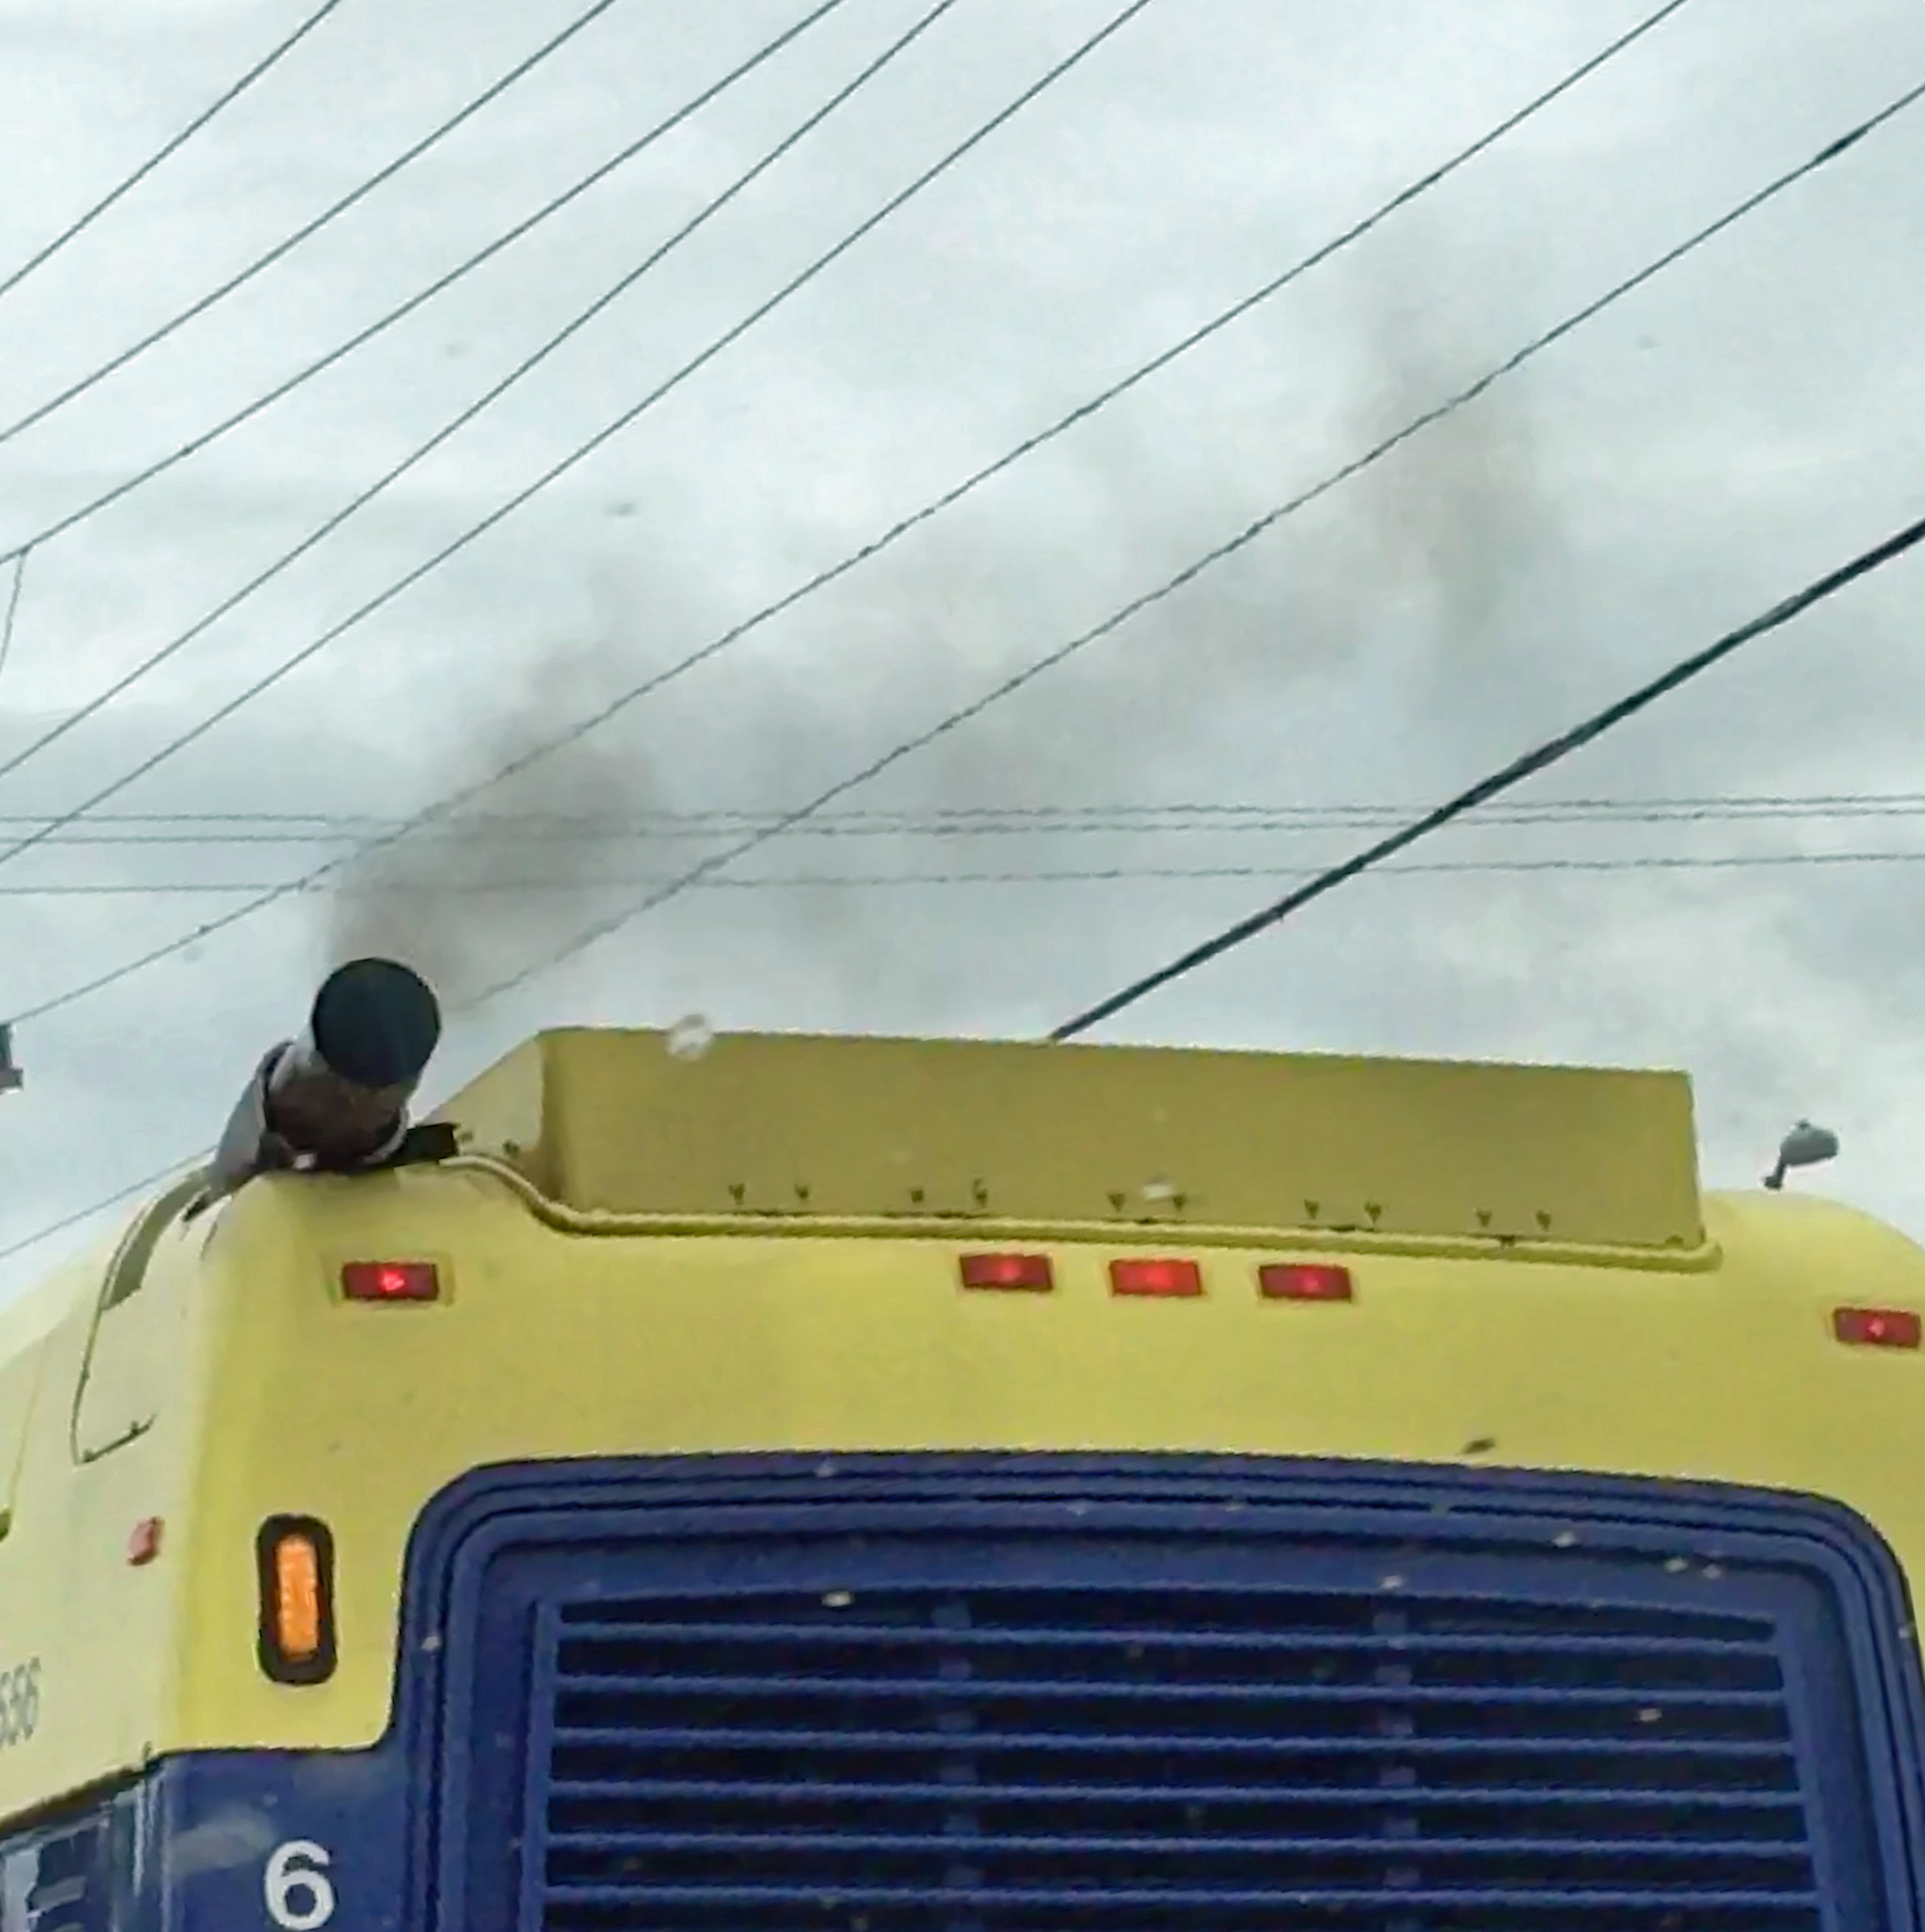 A bus gives off exhaust fumes in Alexandria, Virginia. (Photo by Diaa Bekheet). The World Health Organization reported on Monday Oct. 29, 2018, that more than 90 percent, or nearly 2 billion children under the age of 15, breathe toxic air every day. ...